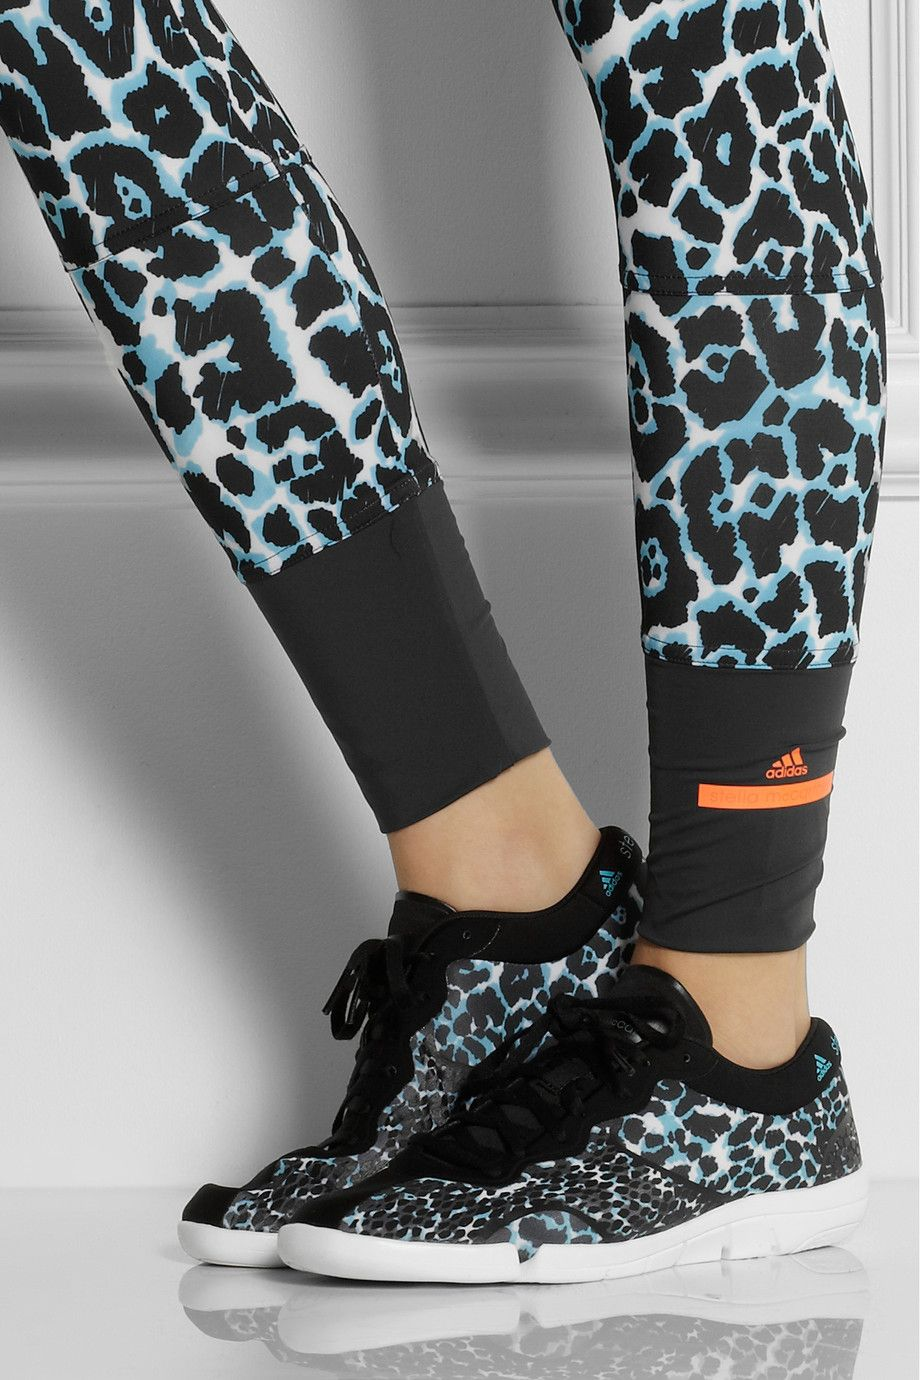 Adidas by Stella McCartney | Ararauna Dance leopard print